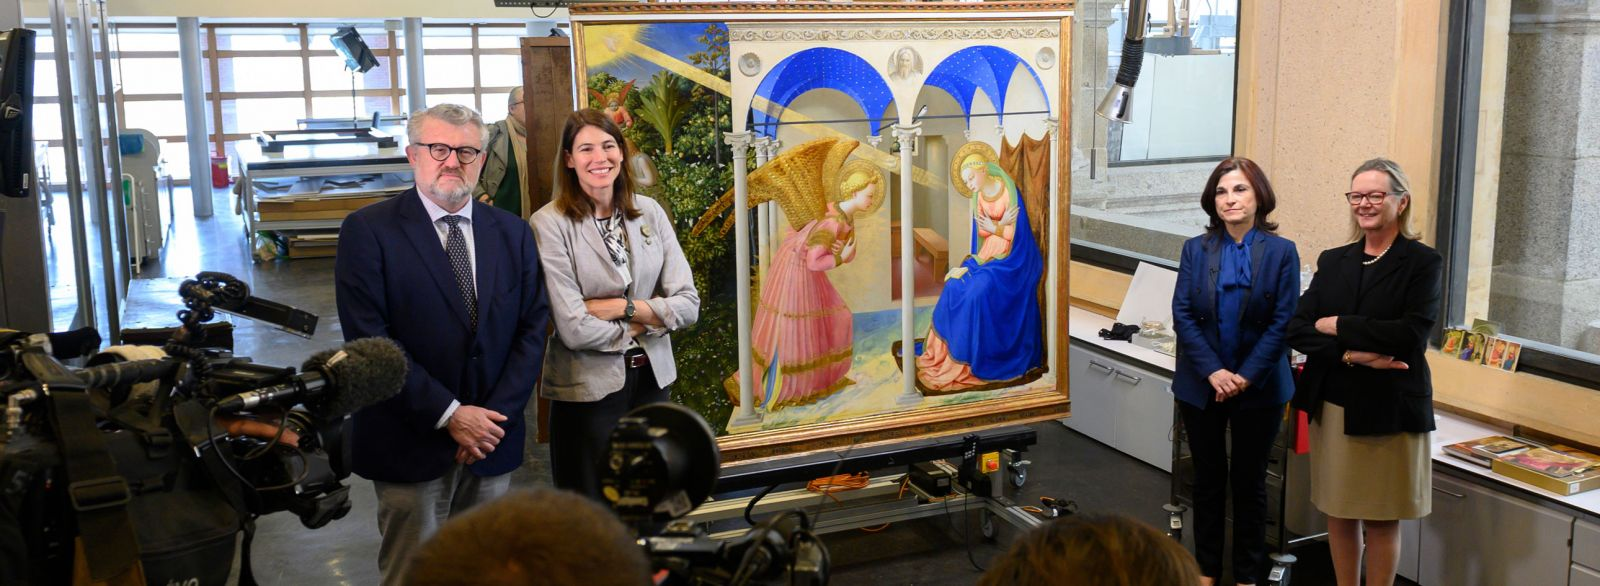 The Annunciation restored